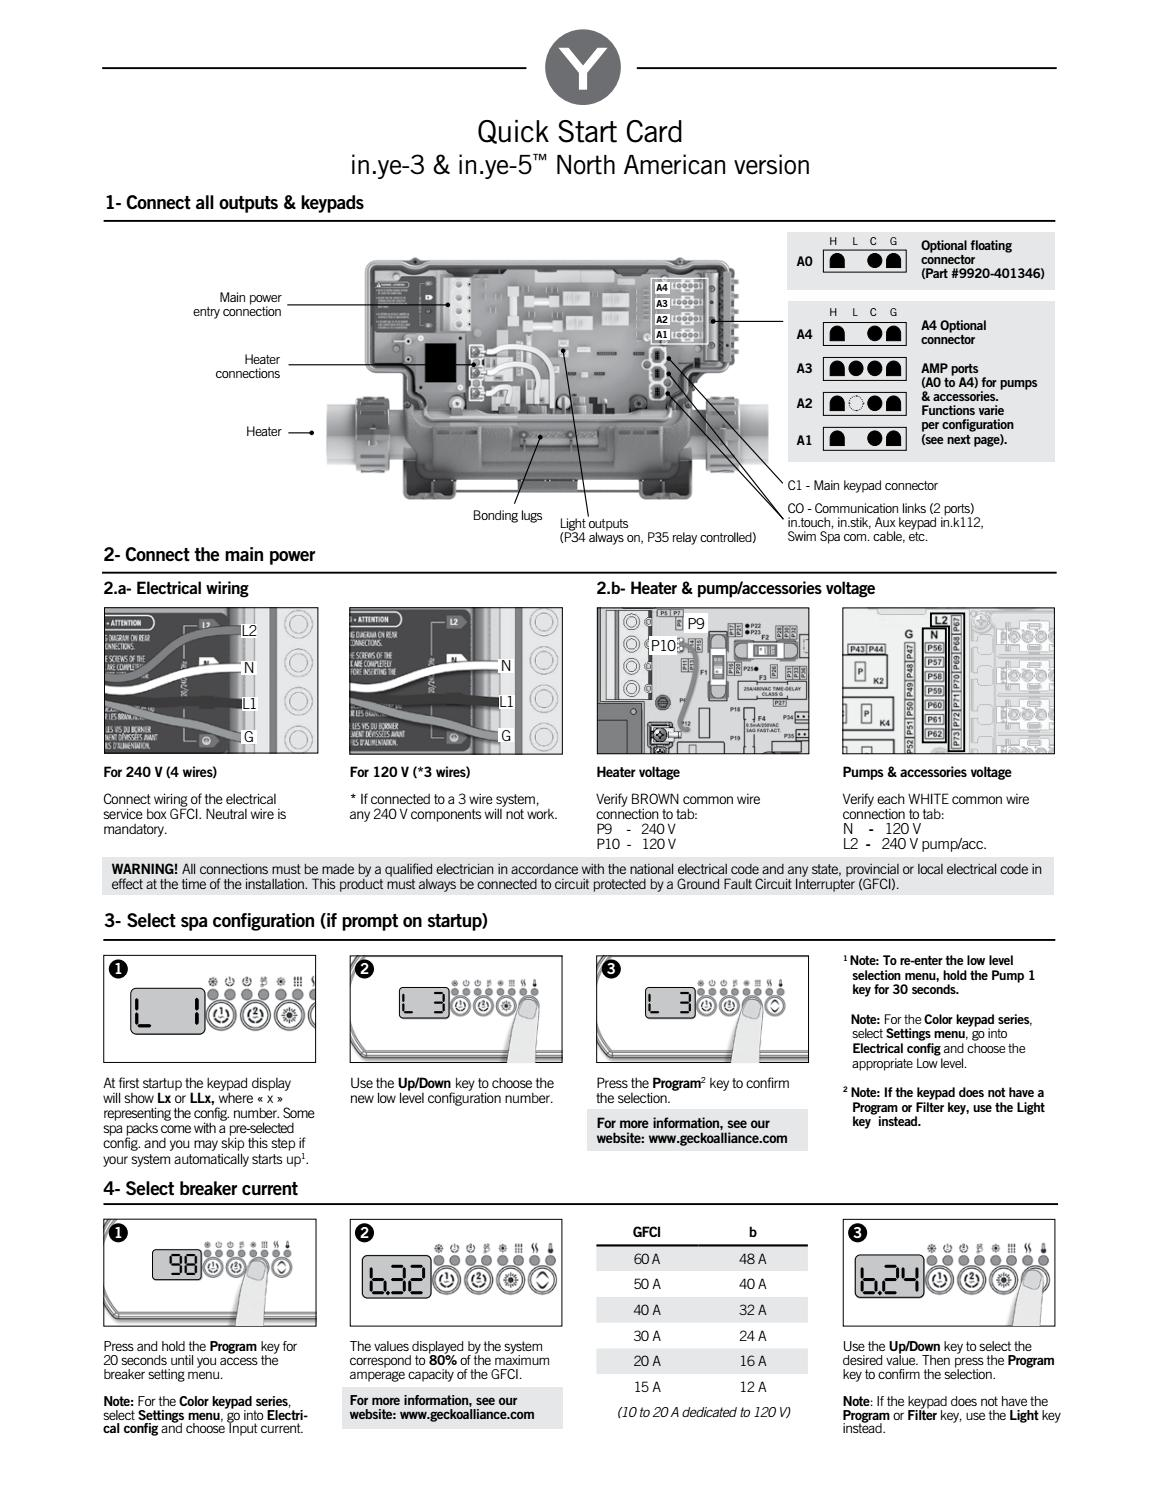 Spa Wiring Diagram Keys And Schematics Hot Tub Together With Controller Home 4 Wire Caldera Portable Tubs Spas Pool Source In Ye 3